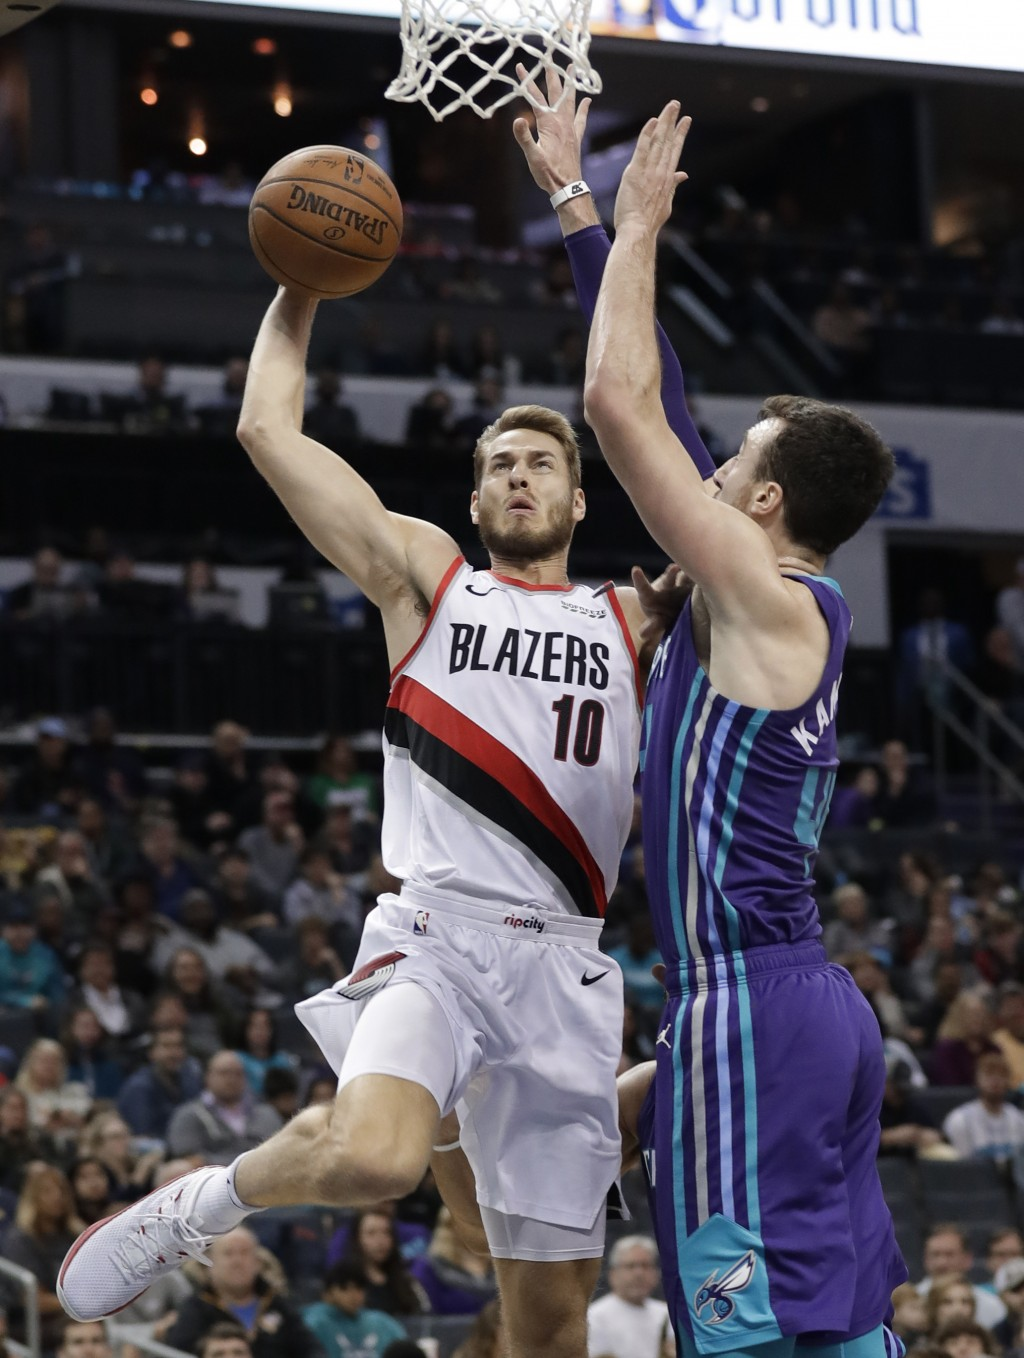 Portland Trail Blazers' Jake Layman (10) shoots against Charlotte Hornets' Frank Kaminsky (44) during the first half of an NBA basketball game in Char